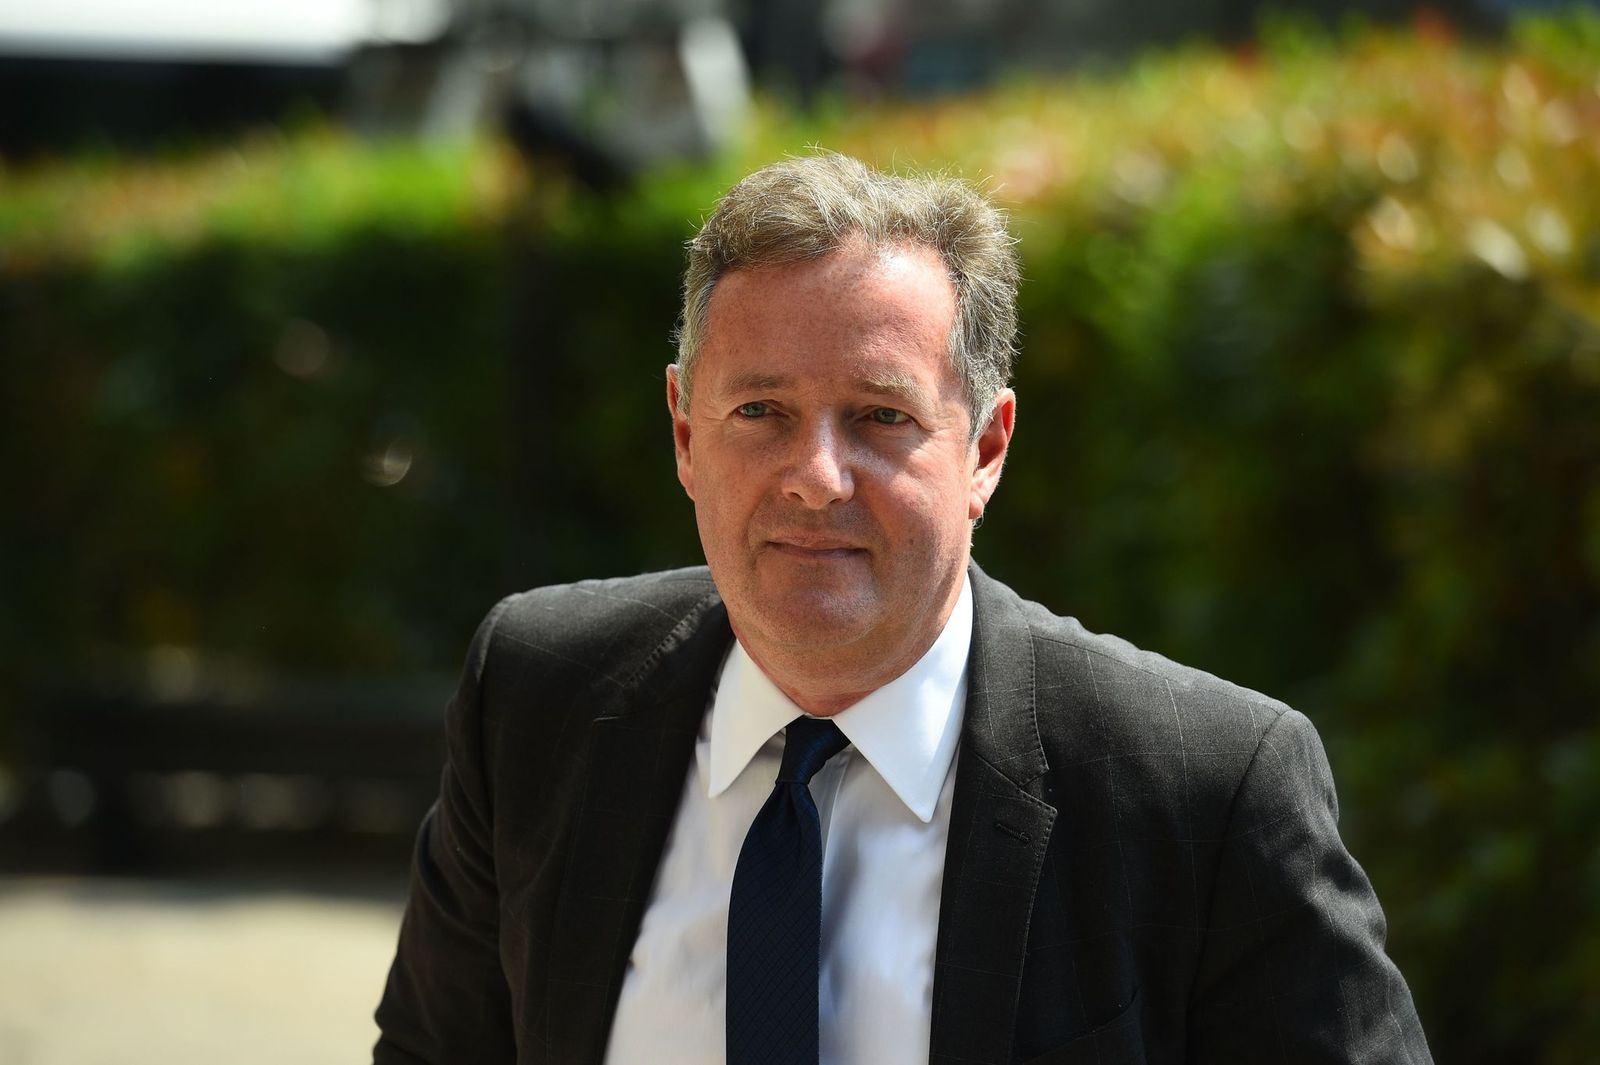 Piers Morgan attends Dale Winton's funeral in London. | Source: Getty Images.